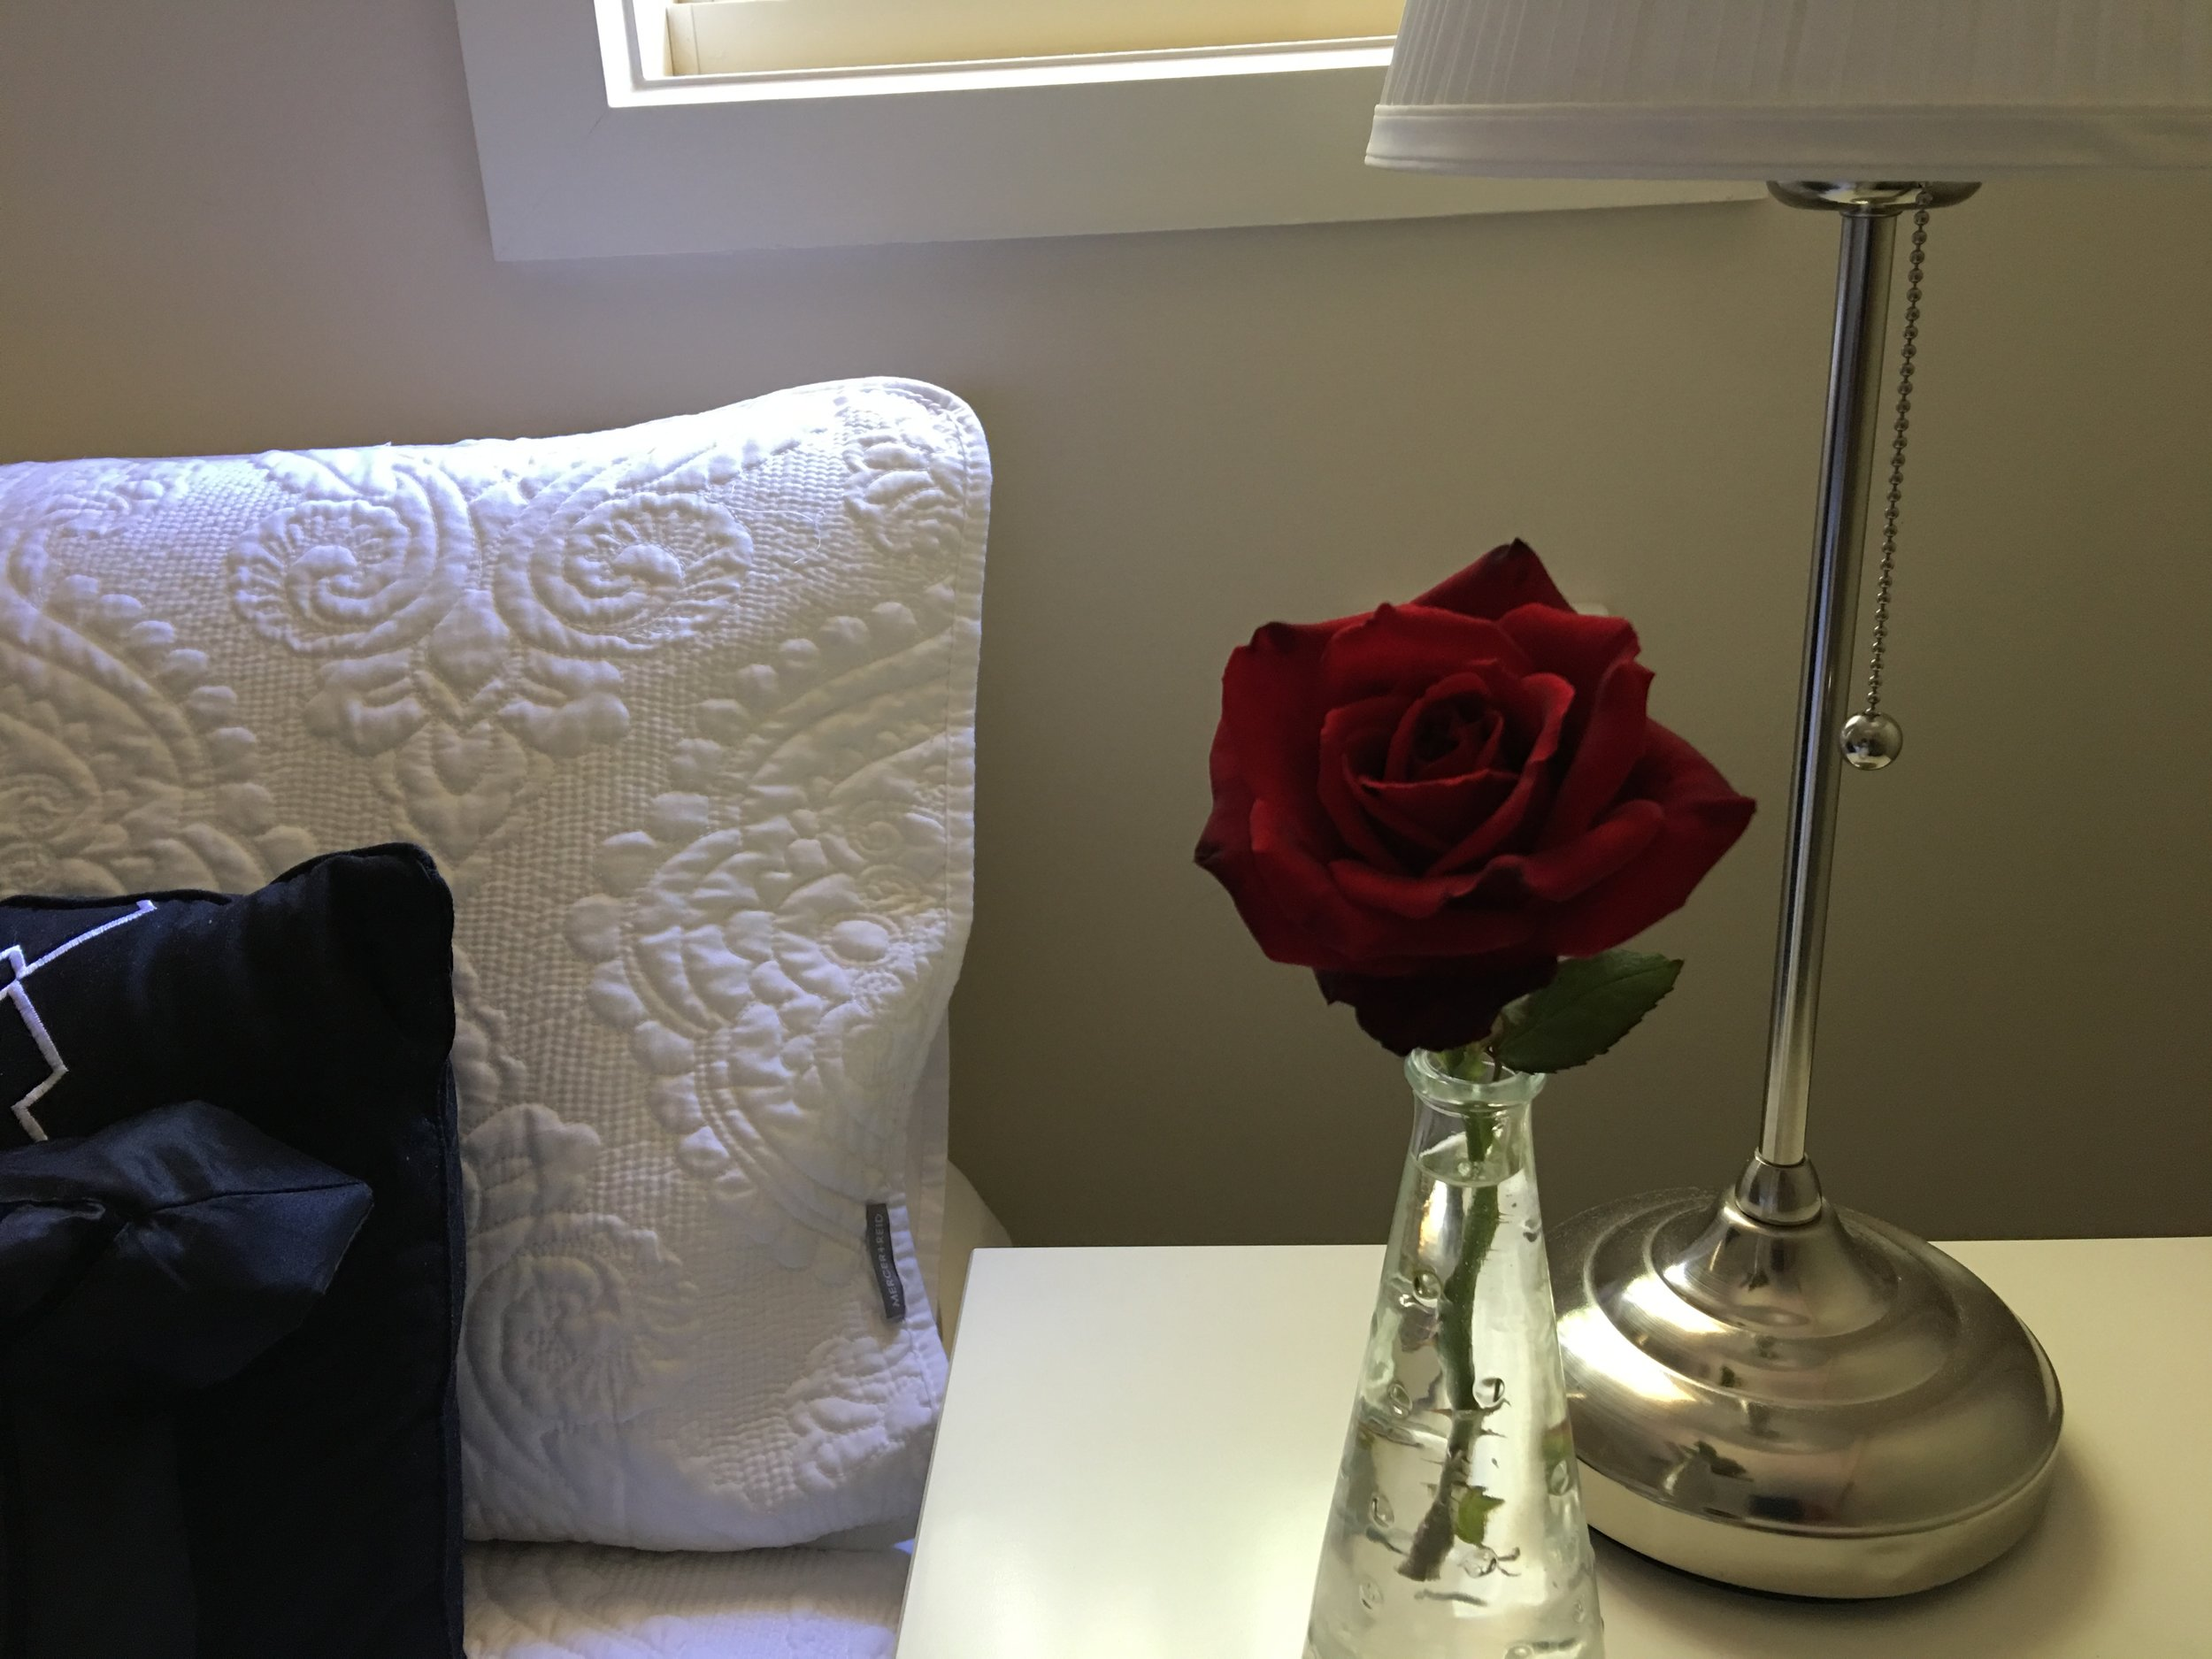 bed 1 with red rose.JPG